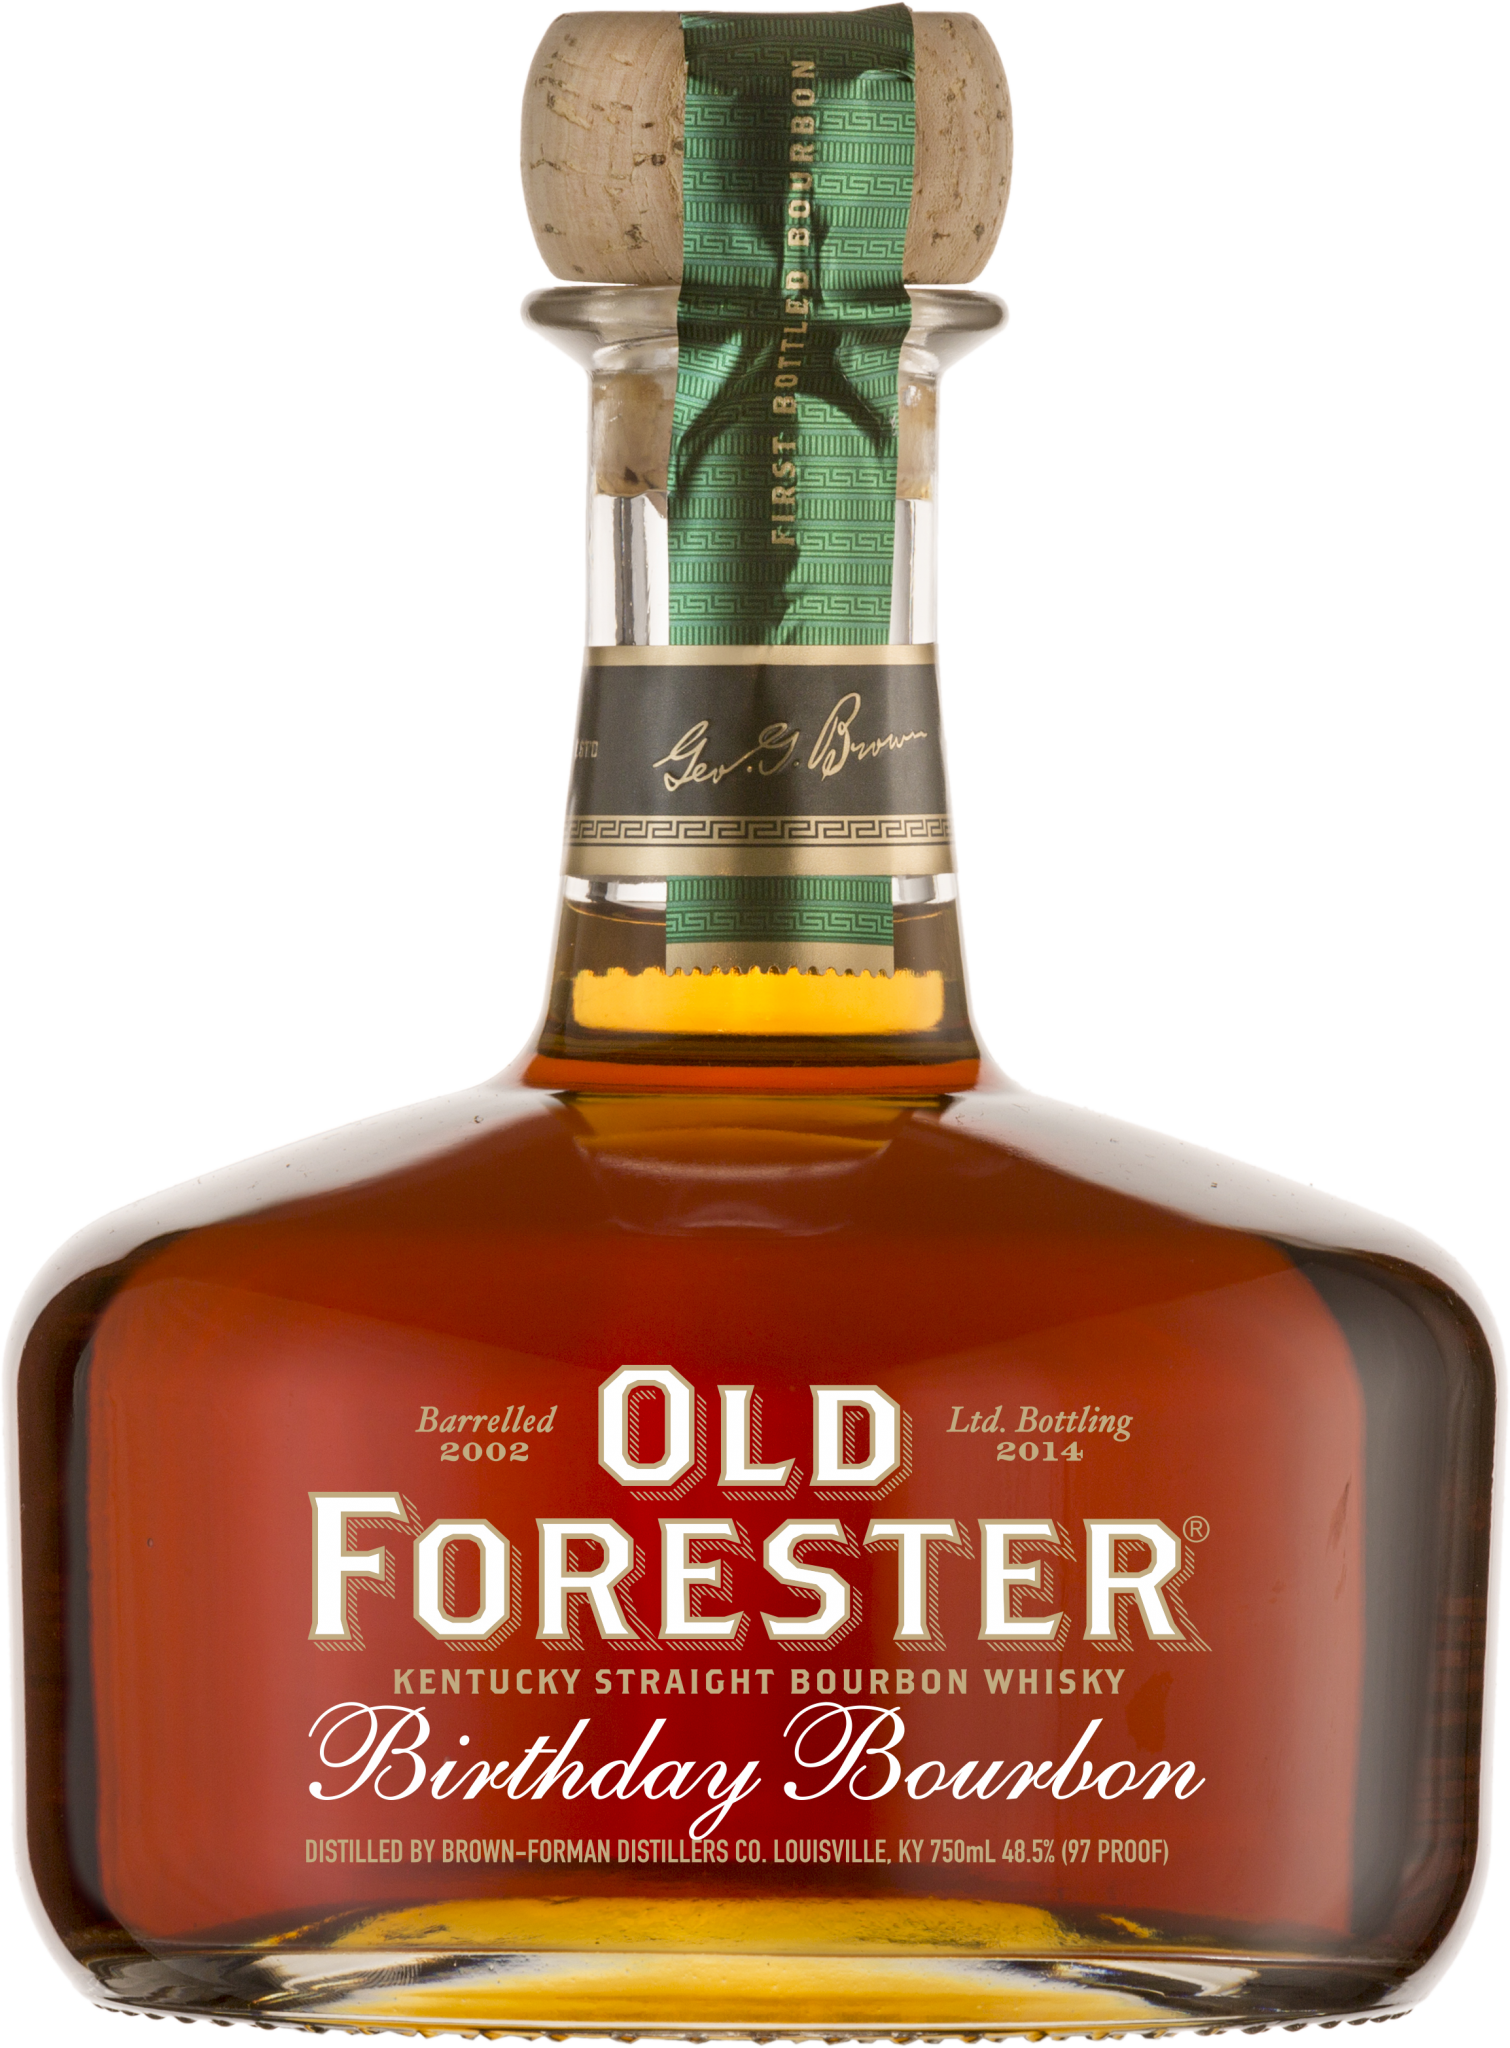 A bottle of Old Forester 2014 Birthday Bourbon on a black background.